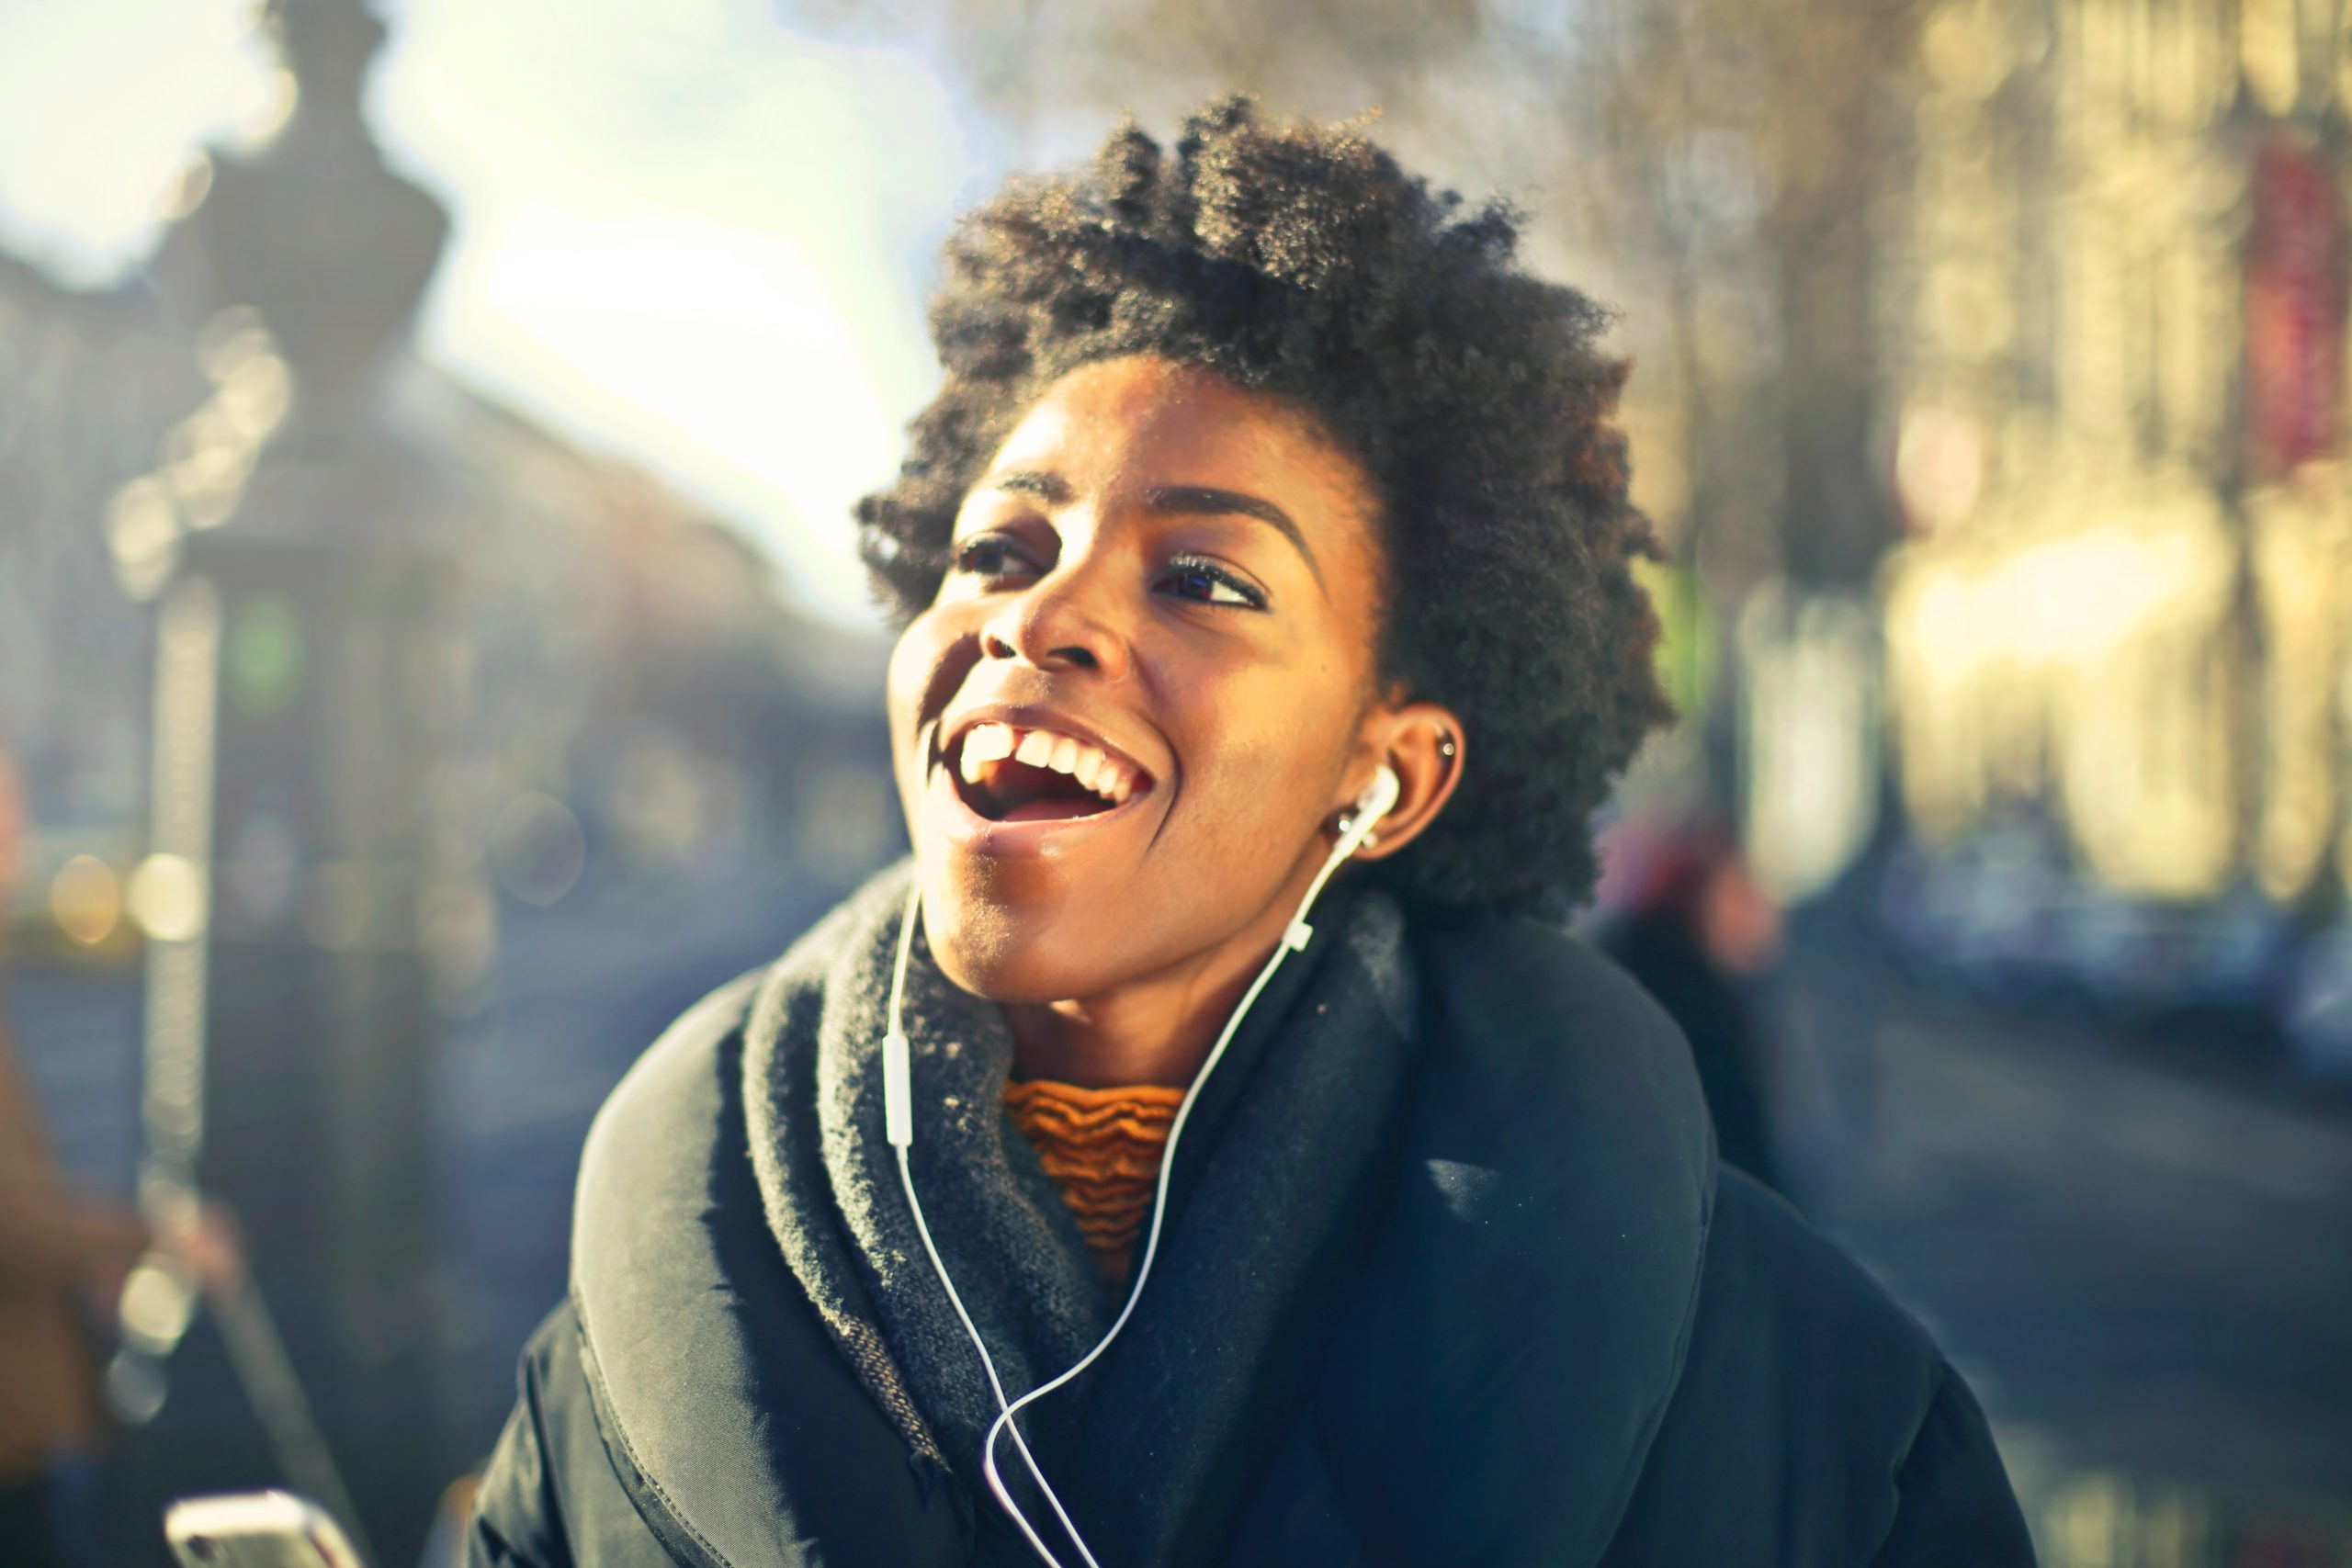 https://www.pexels.com/photo/close-up-photo-of-a-woman-listening-to-music-813940/